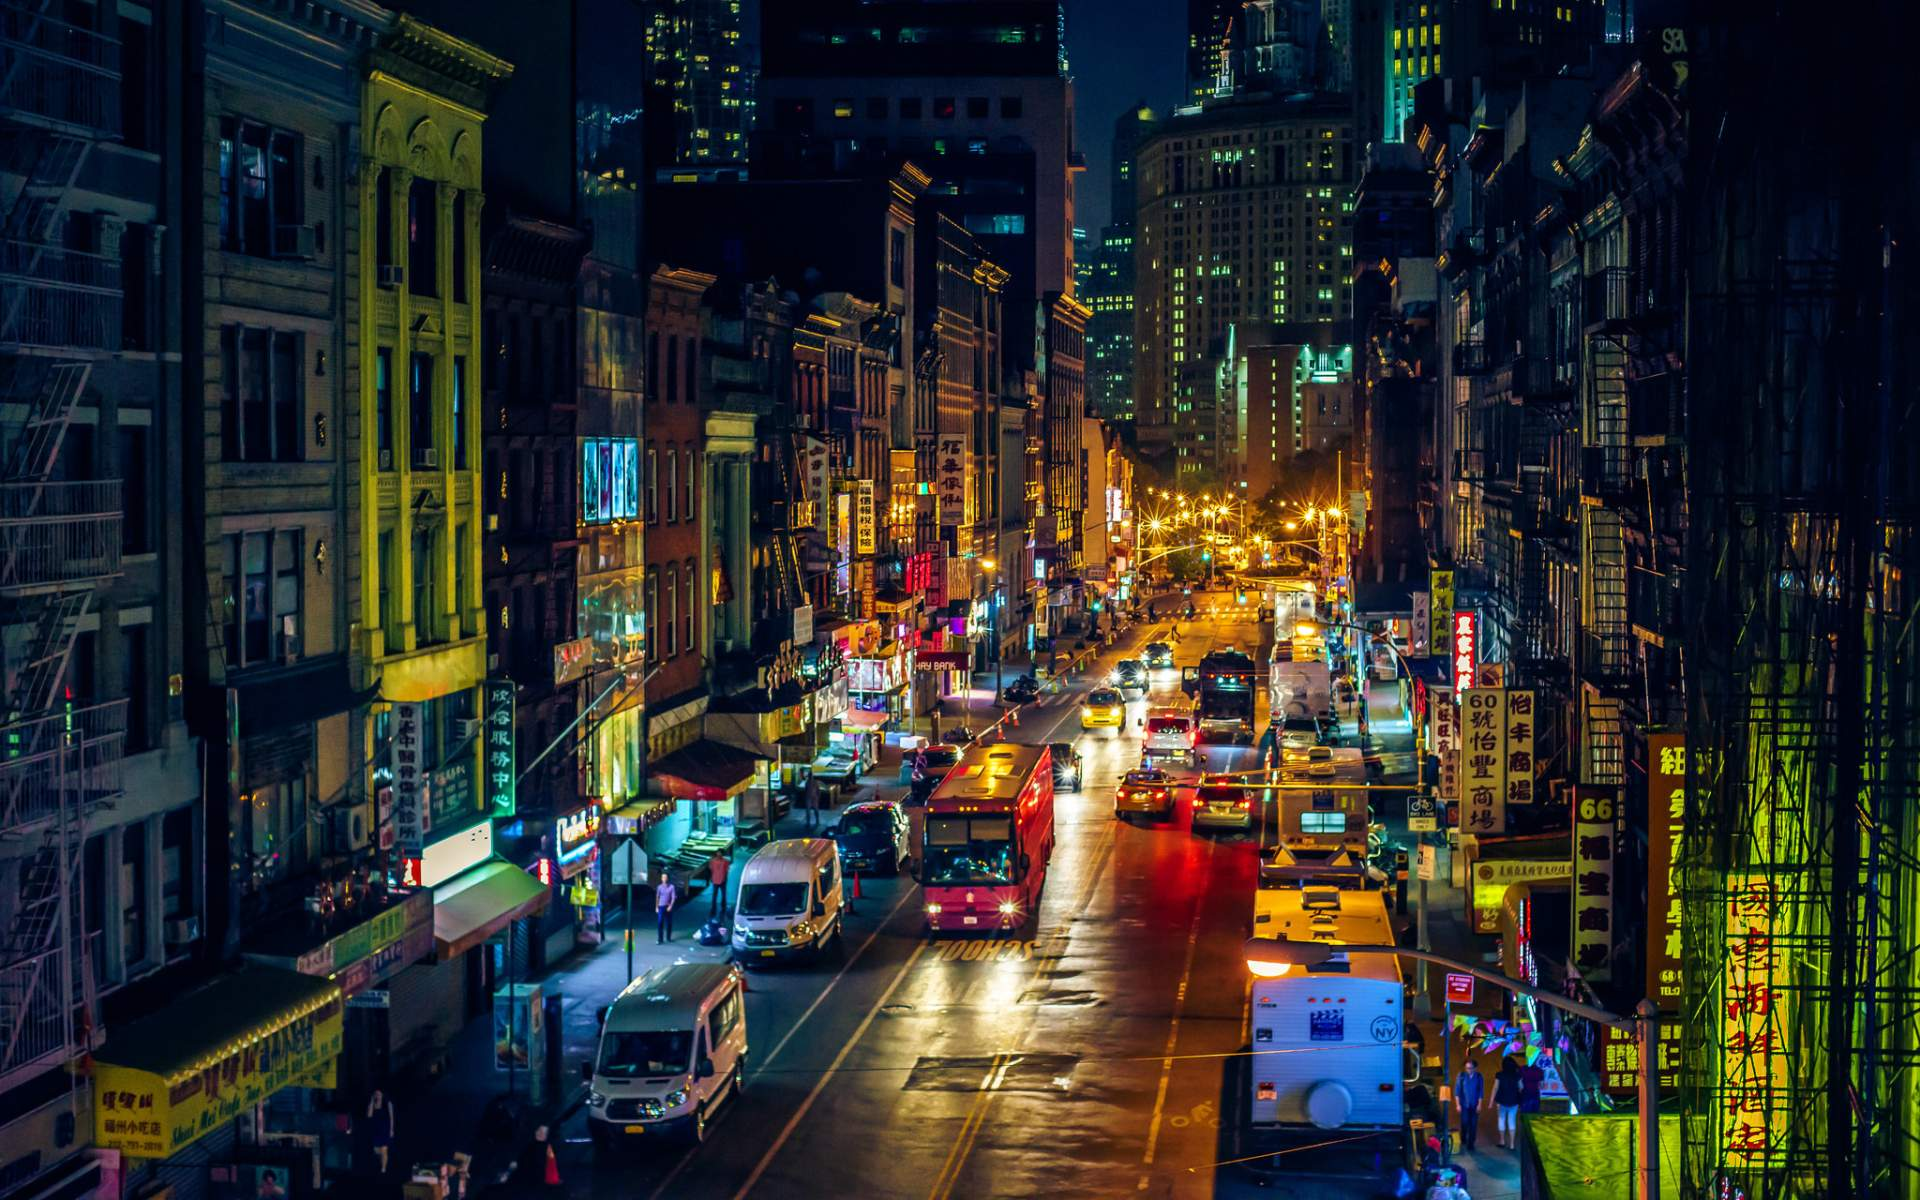 New York Street At Night Wallpaper New York Street City 1920x1200 Download Hd Wallpaper Wallpapertip